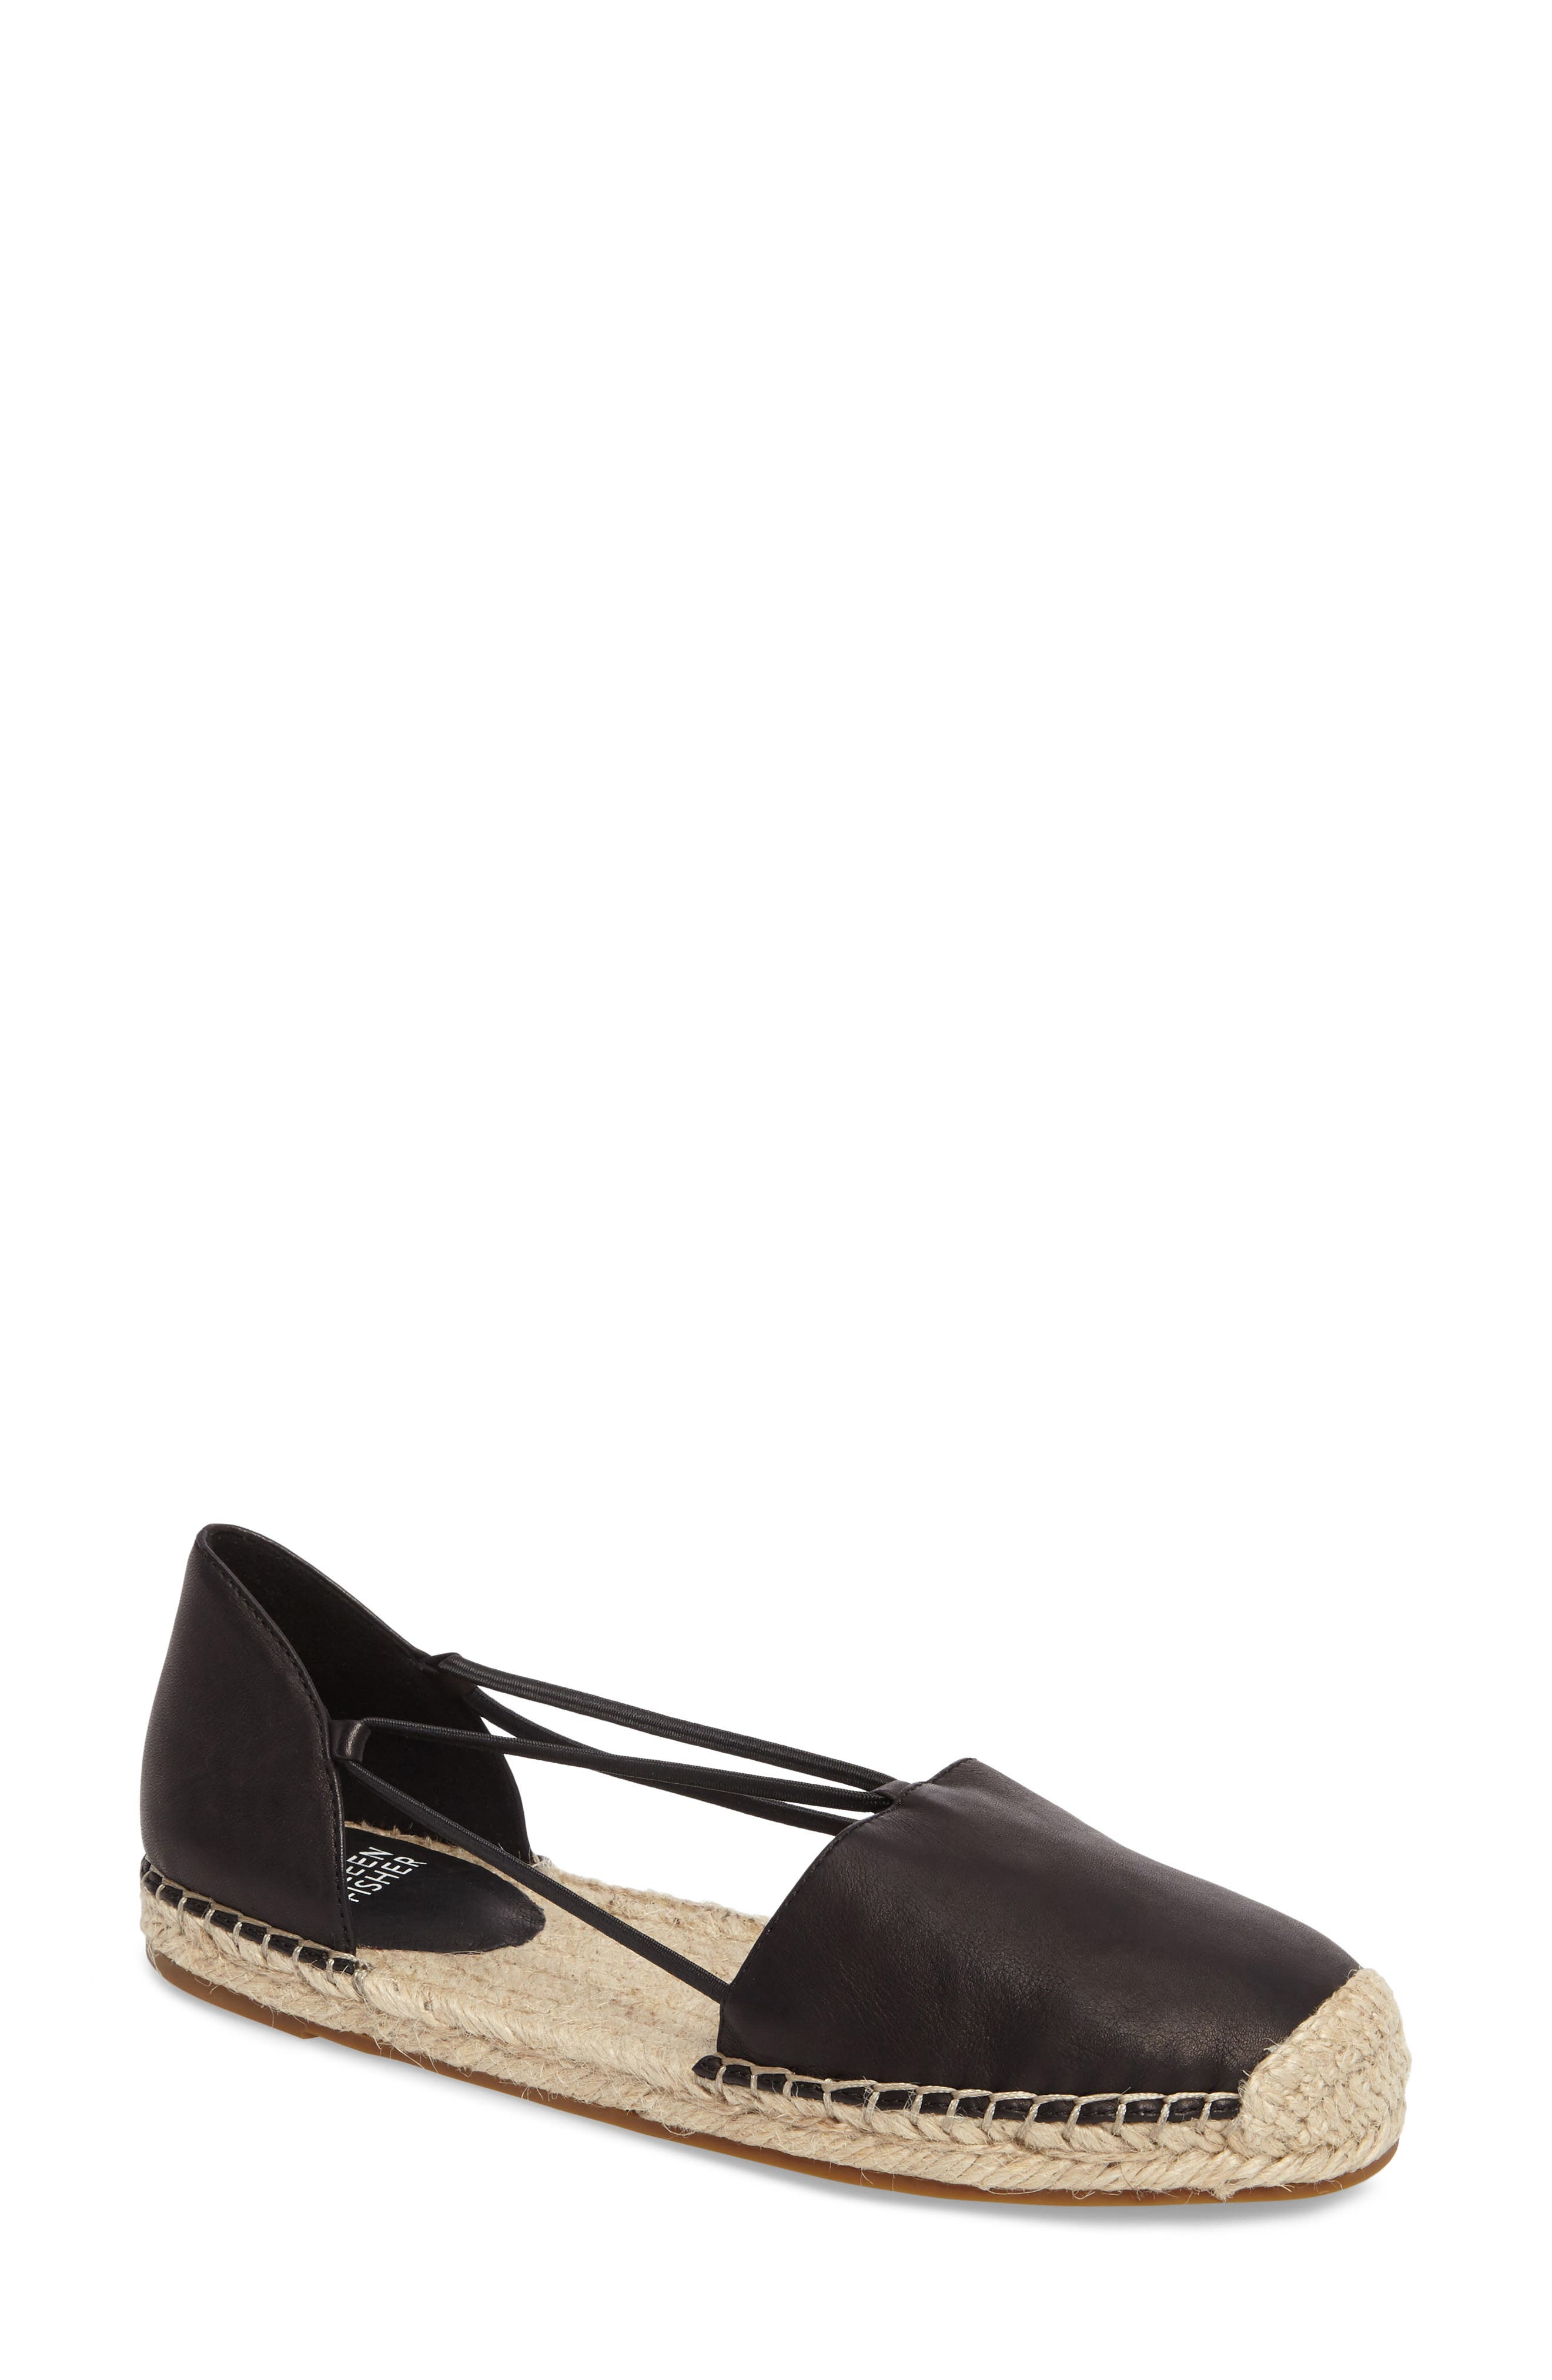 Lee Espadrille Flat,                             Main thumbnail 1, color,                             BLACK WASHED LEATHER